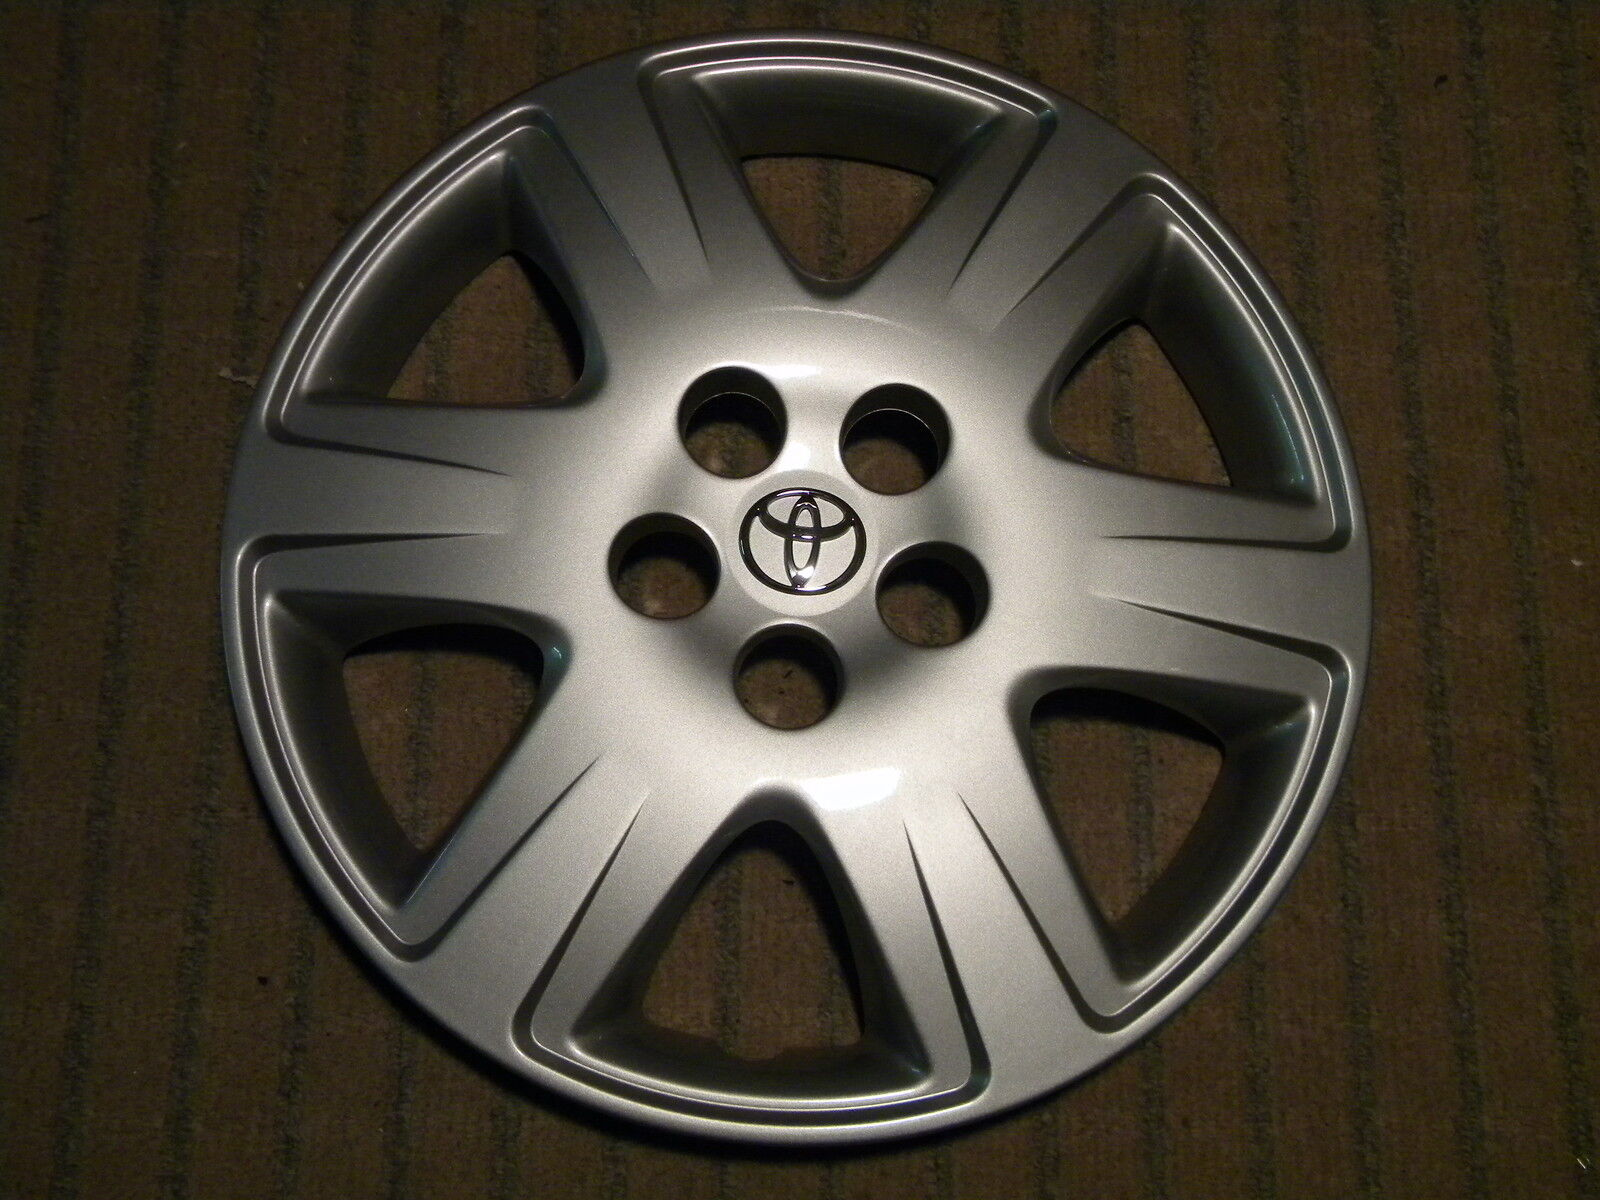 Used Toyota Wheels Amp Hubcaps For Sale